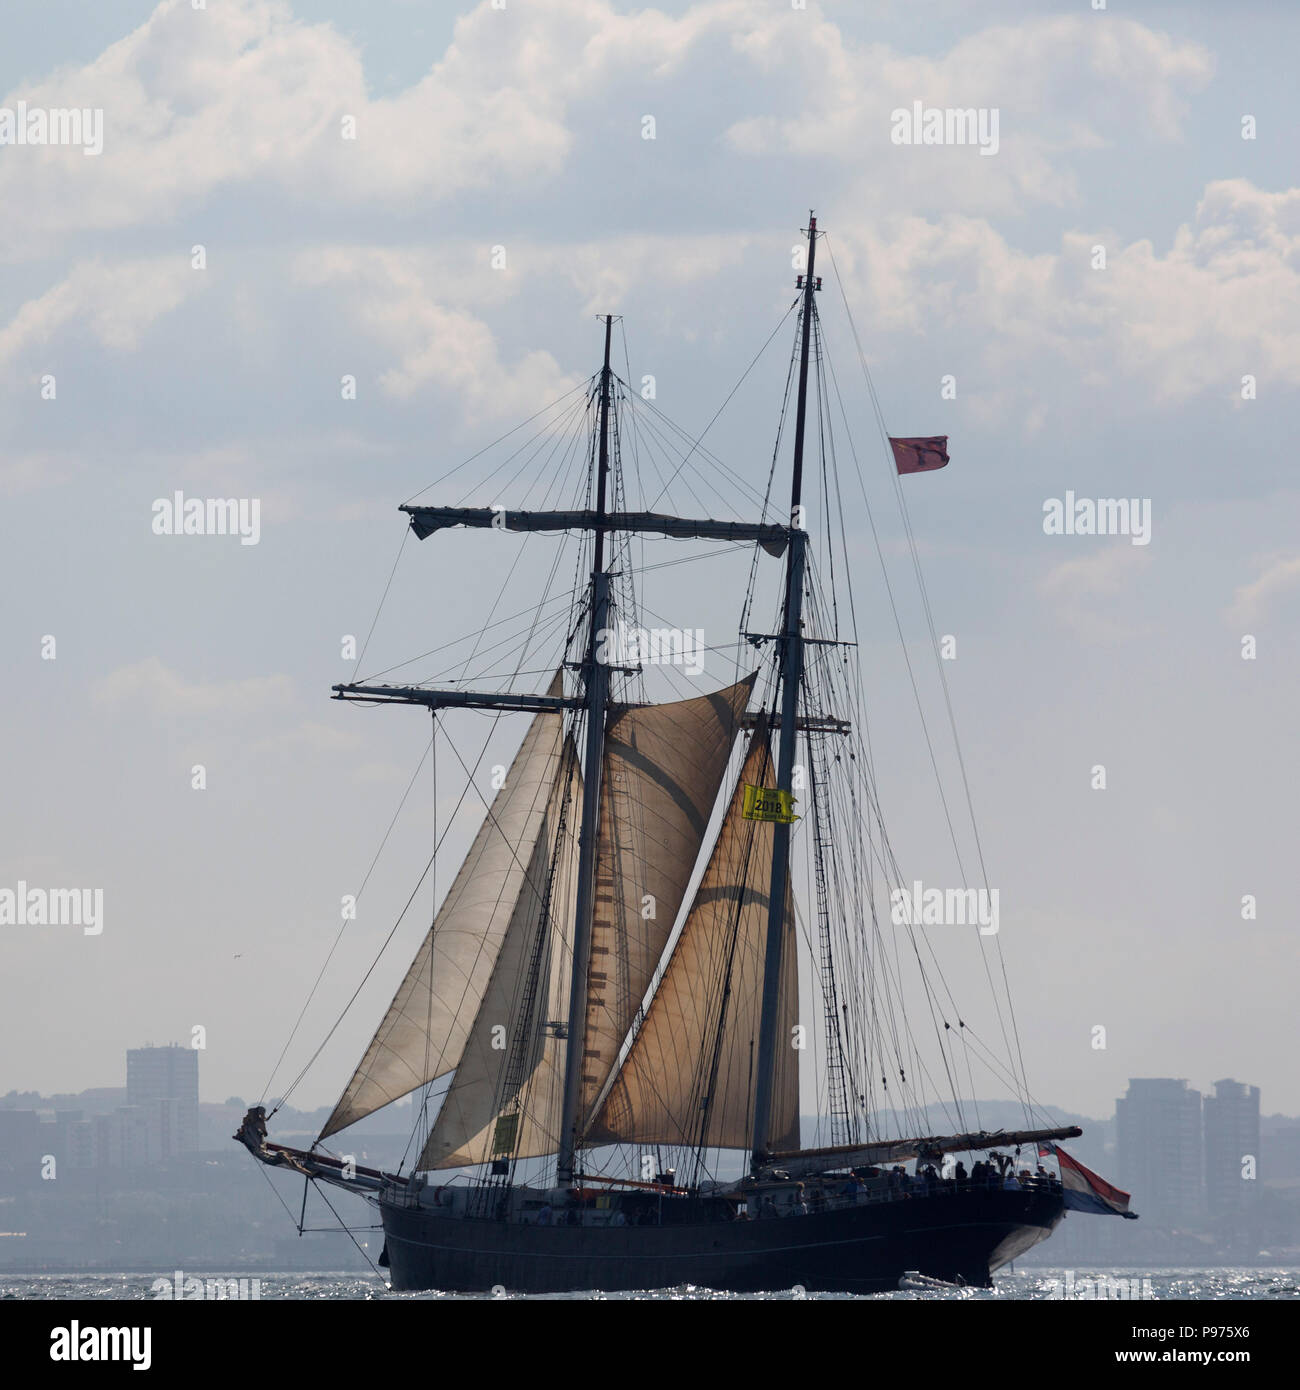 Sunderland, UK. 14th July 2018. The Wylde Swan, a Dutch ship, on the North Sea, taking people for a cruise before the beginning of the first leg of the 2018 Tall Ships Race, to Ebsjerg in Denmark. More than 50 tall ships were docked in the Port of Sunderland, in north-east England, from 11 to 14 July 2018. Credit: Stuart Forster/Alamy Live News - Stock Image